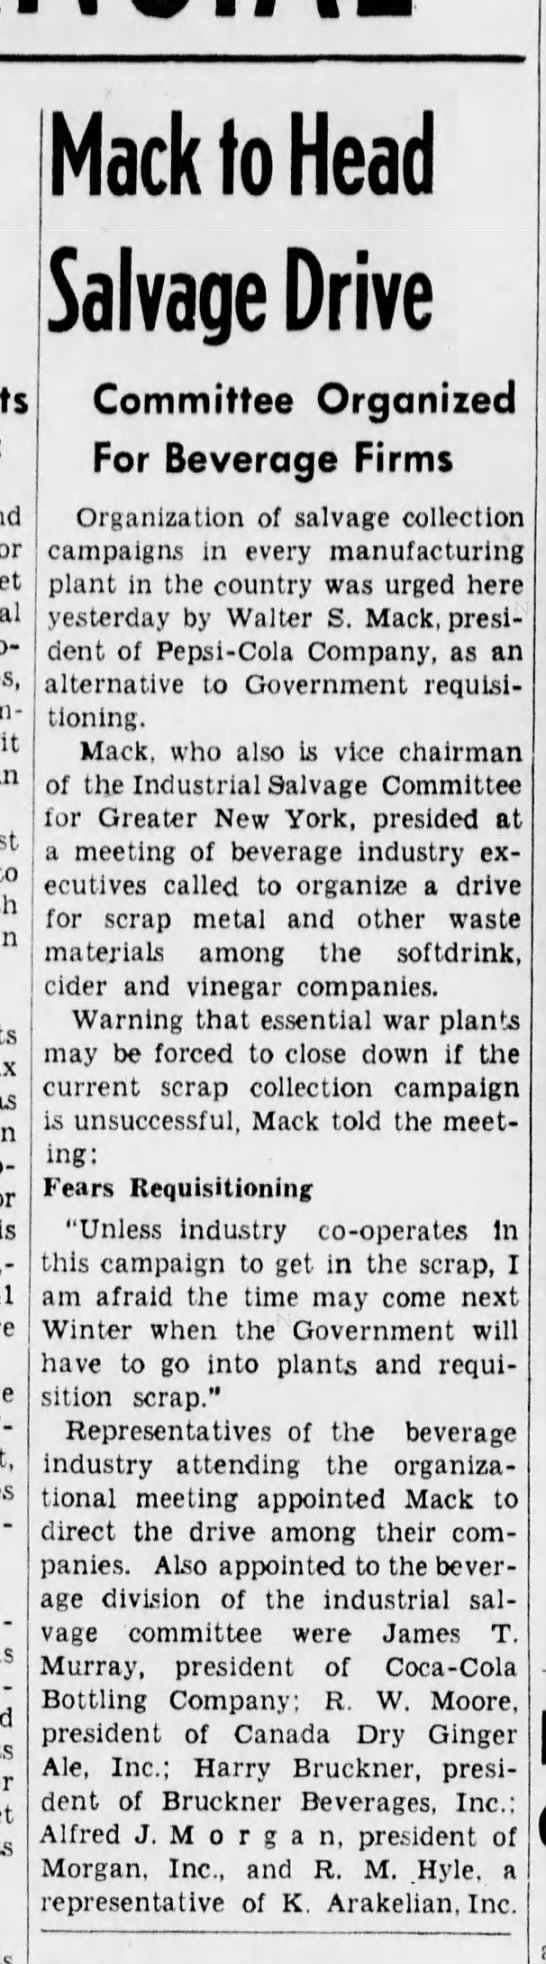 Mack heads salvage drive for beverage firms, The Brooklyn Daily Eagle, 23 July 1942 -